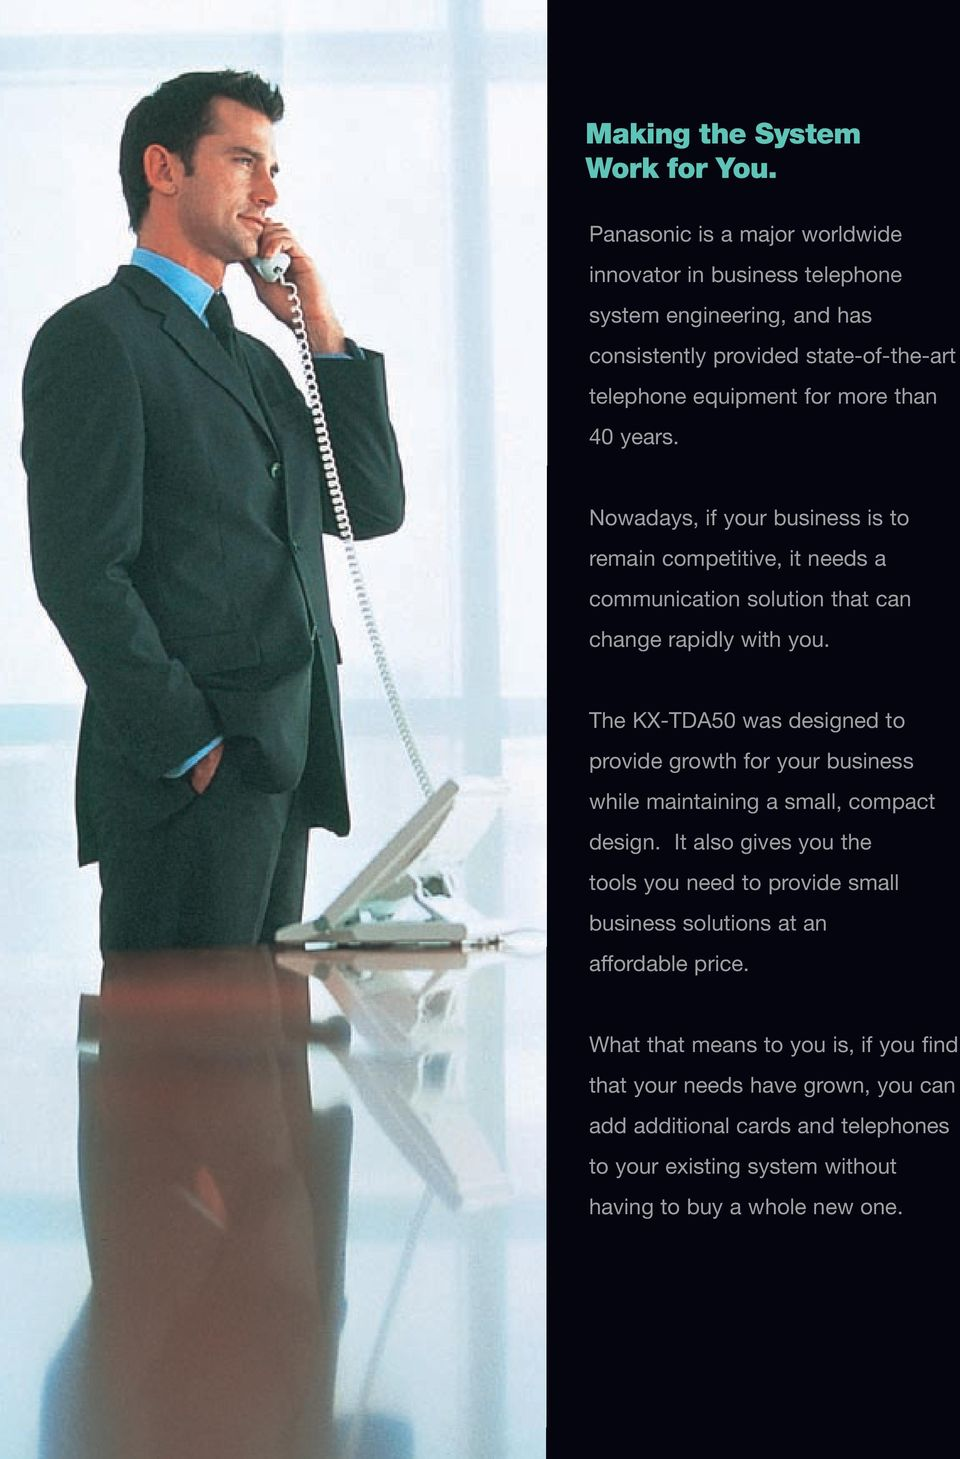 Nowadays, if your business is to remain competitive, it needs a communication solution that can change rapidly with you.